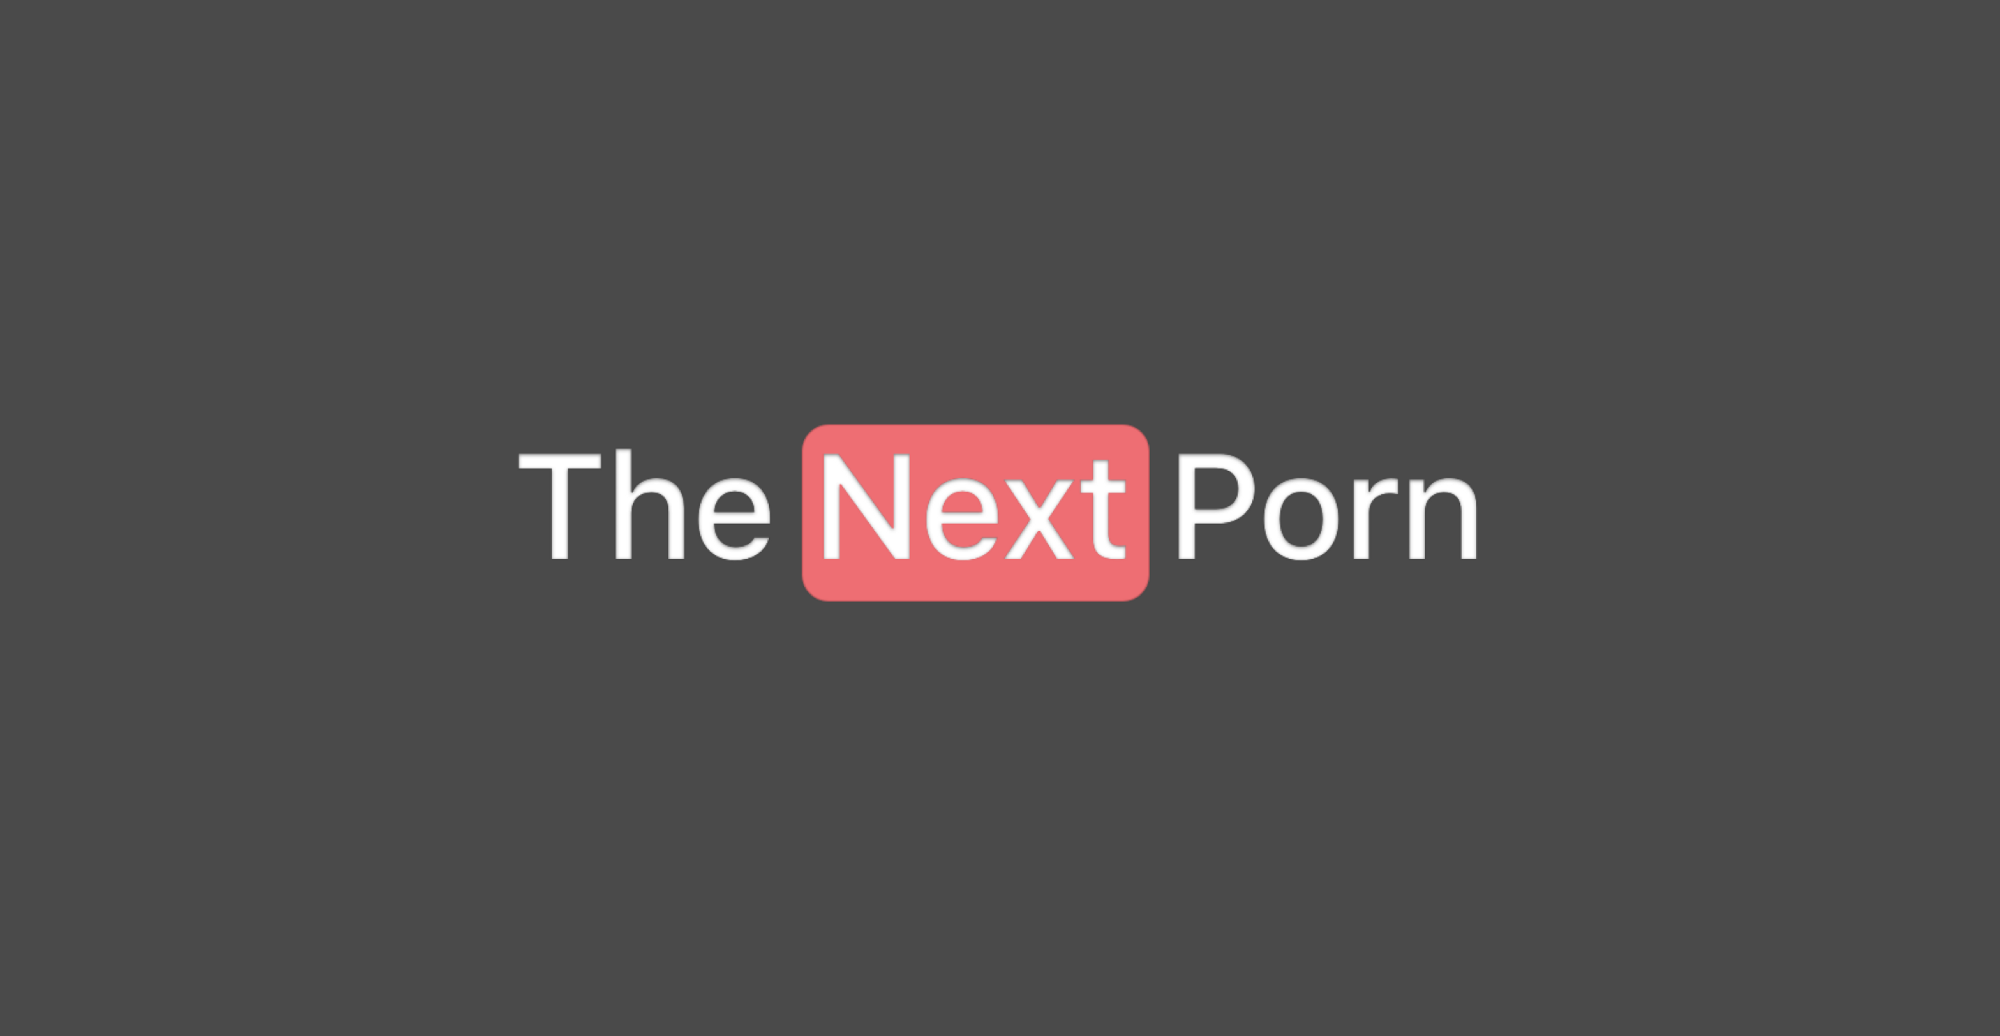 The Next Porn: How to design a service without having money